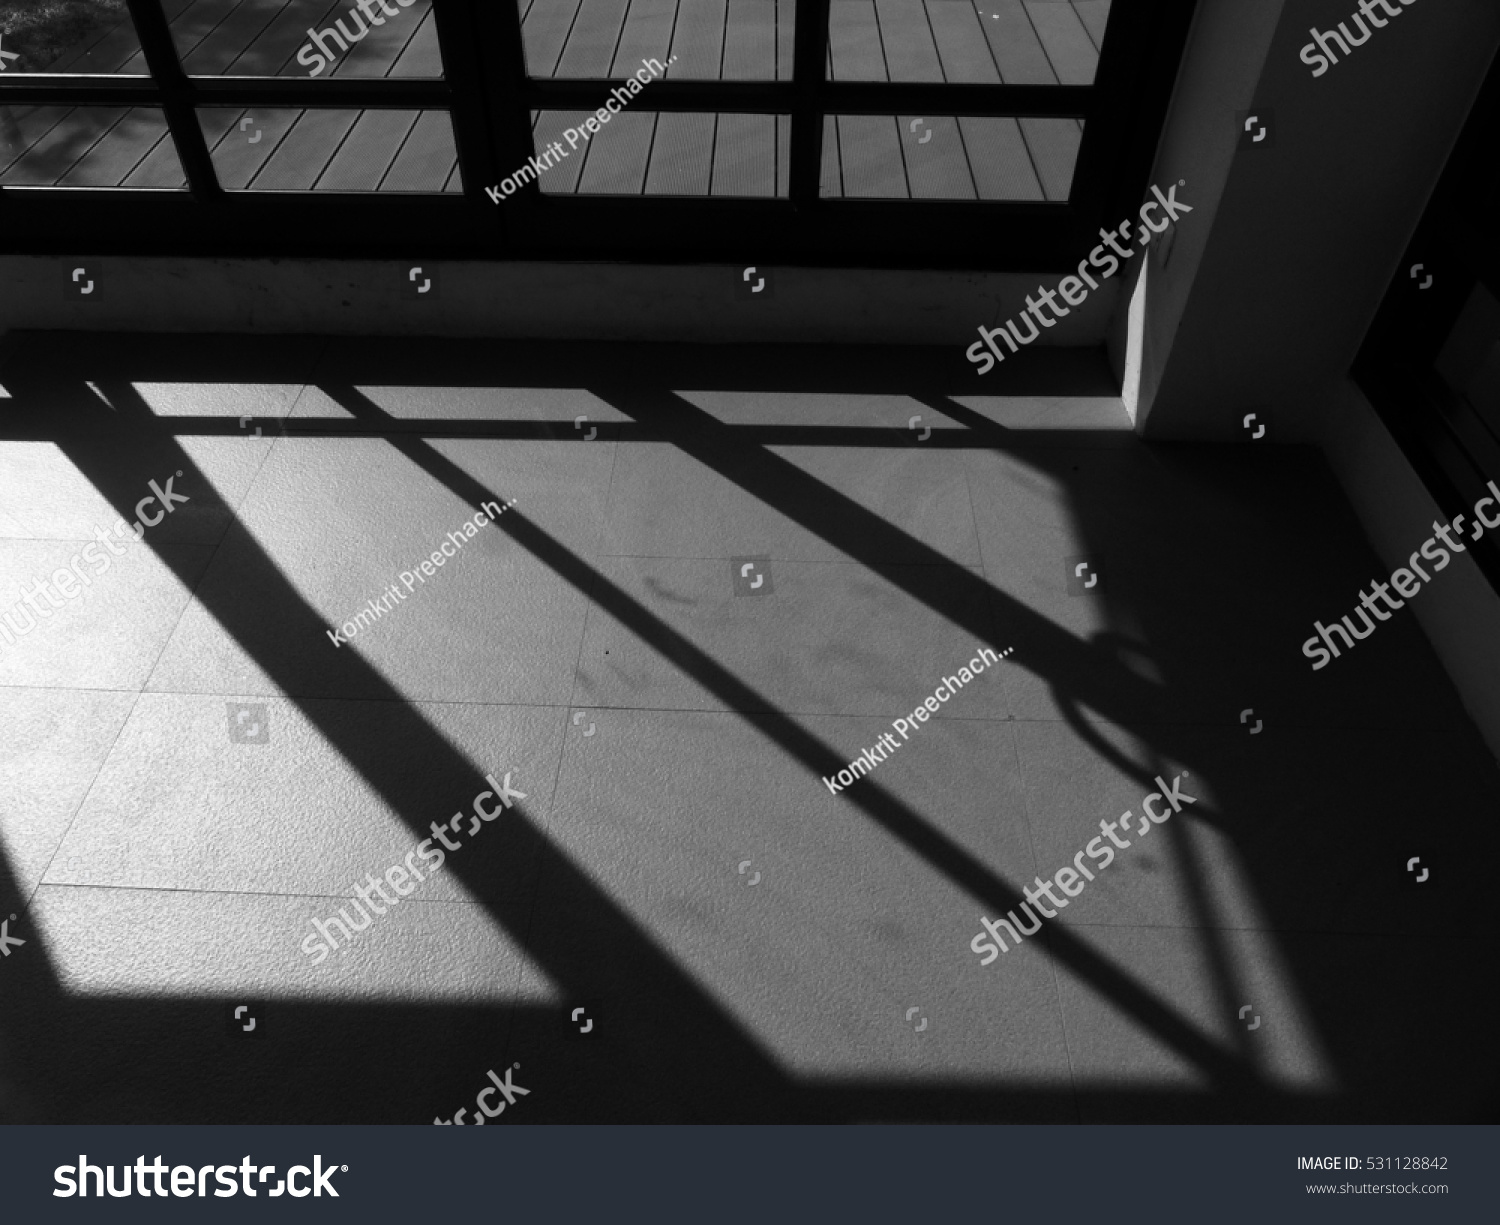 Shadow Gap Staircase Lighting: Black And White Staircase Interior With Light And Shadow